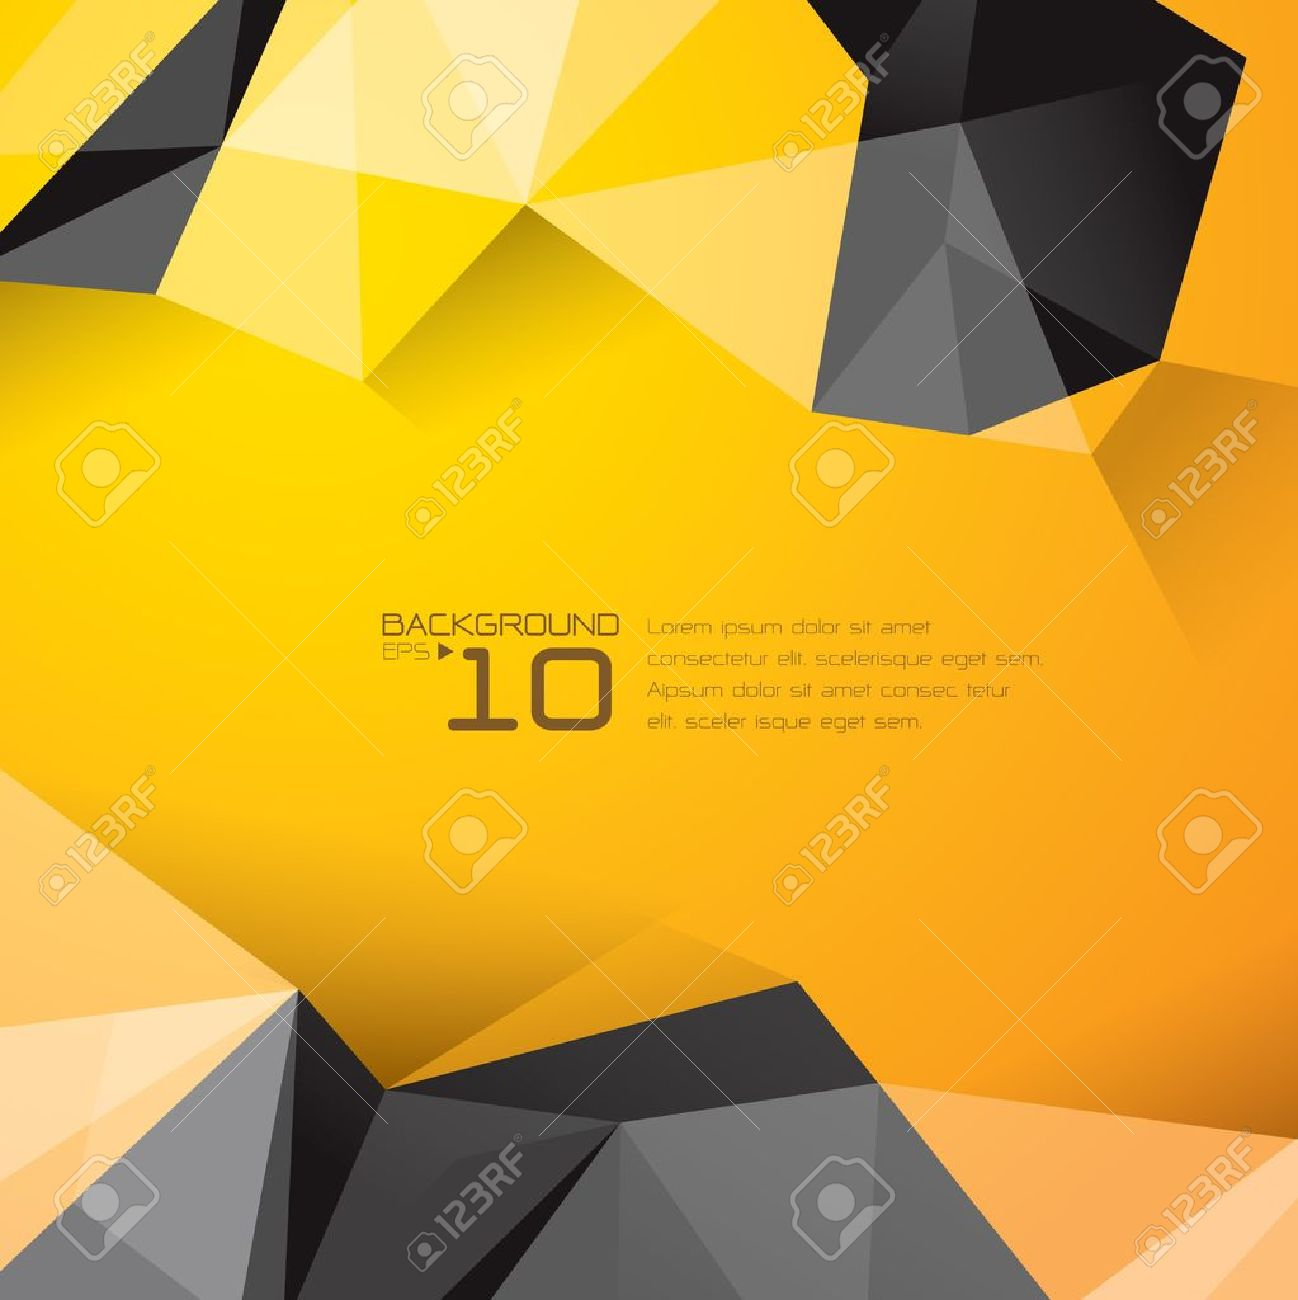 Polygonal design - Abstract geometrical background Stock Vector - 21640138